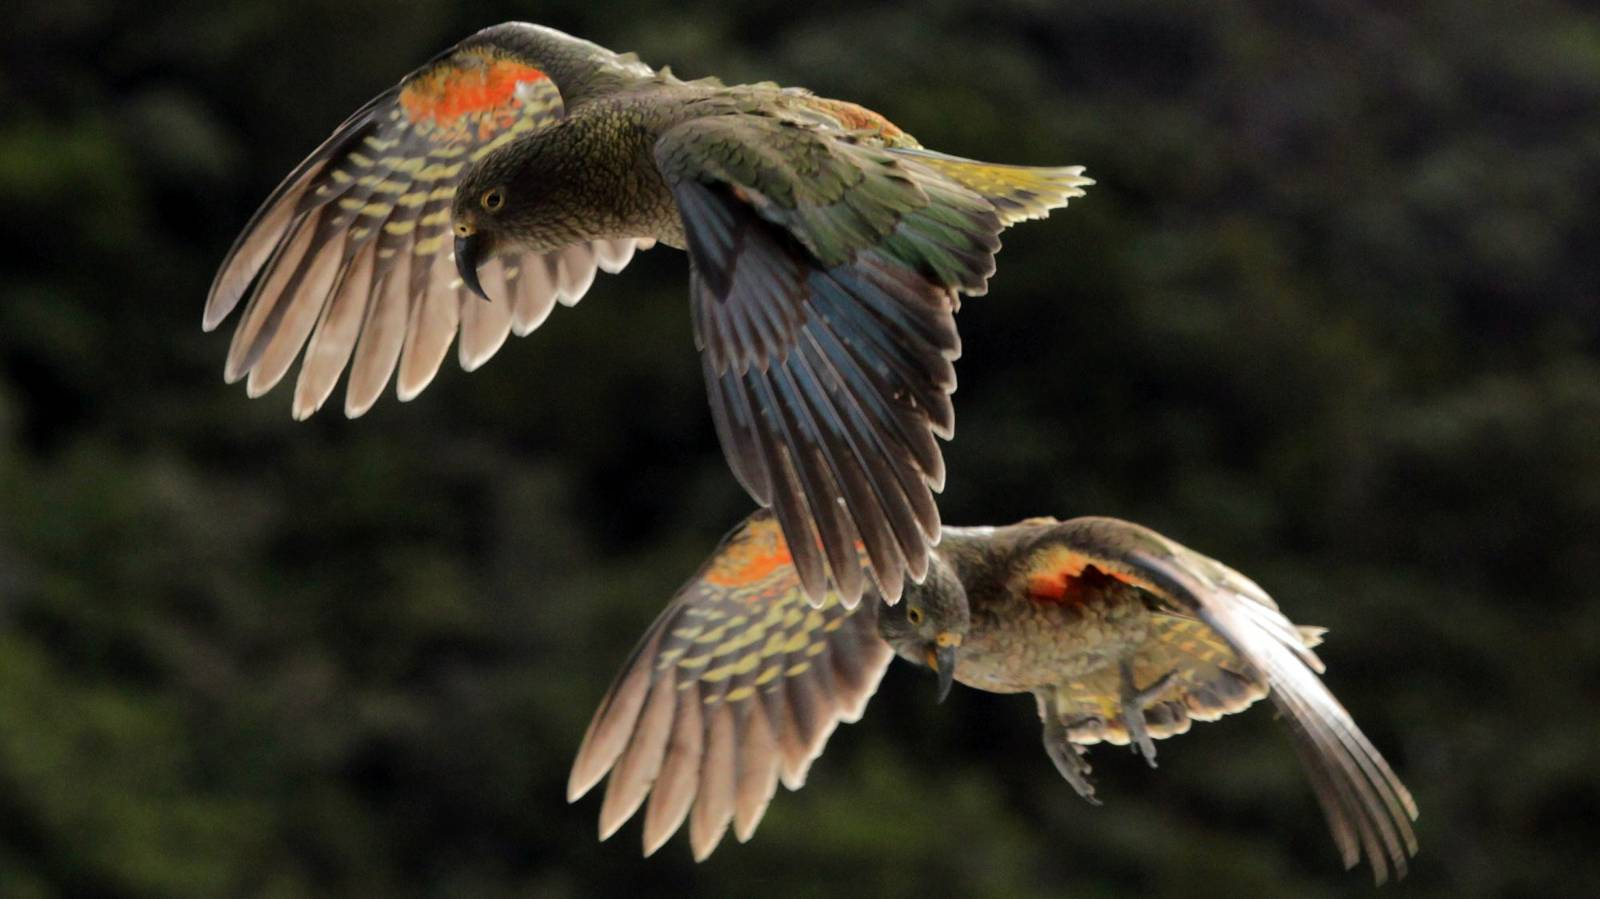 For sale: one endangered kea, but beyond the border it's completely legal